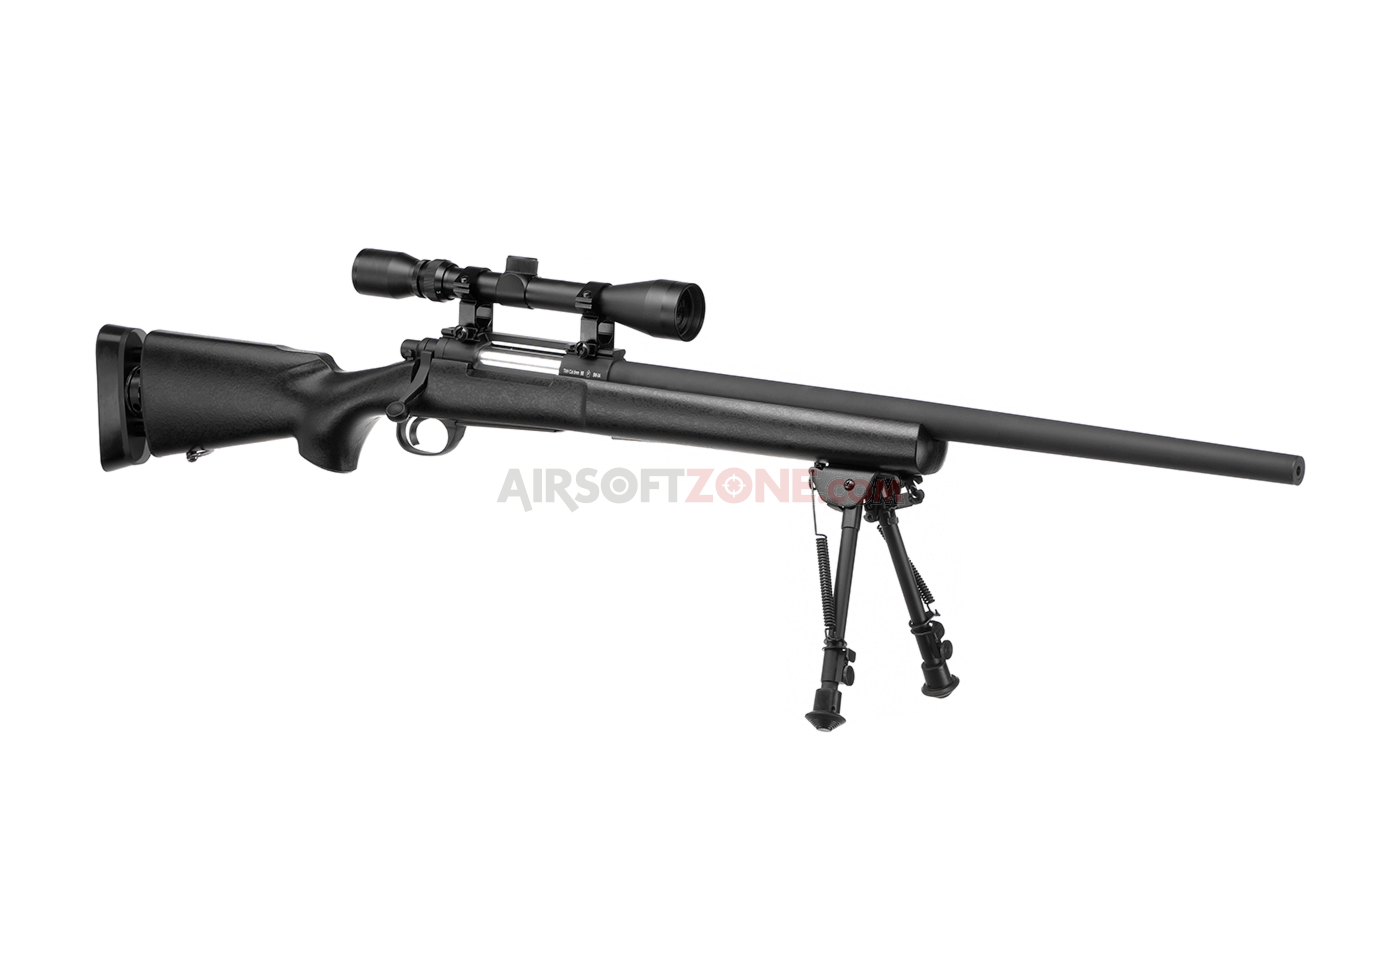 M24 Sws Sniper Weapon System Set Snow Wolf Bolt Action Airsoft